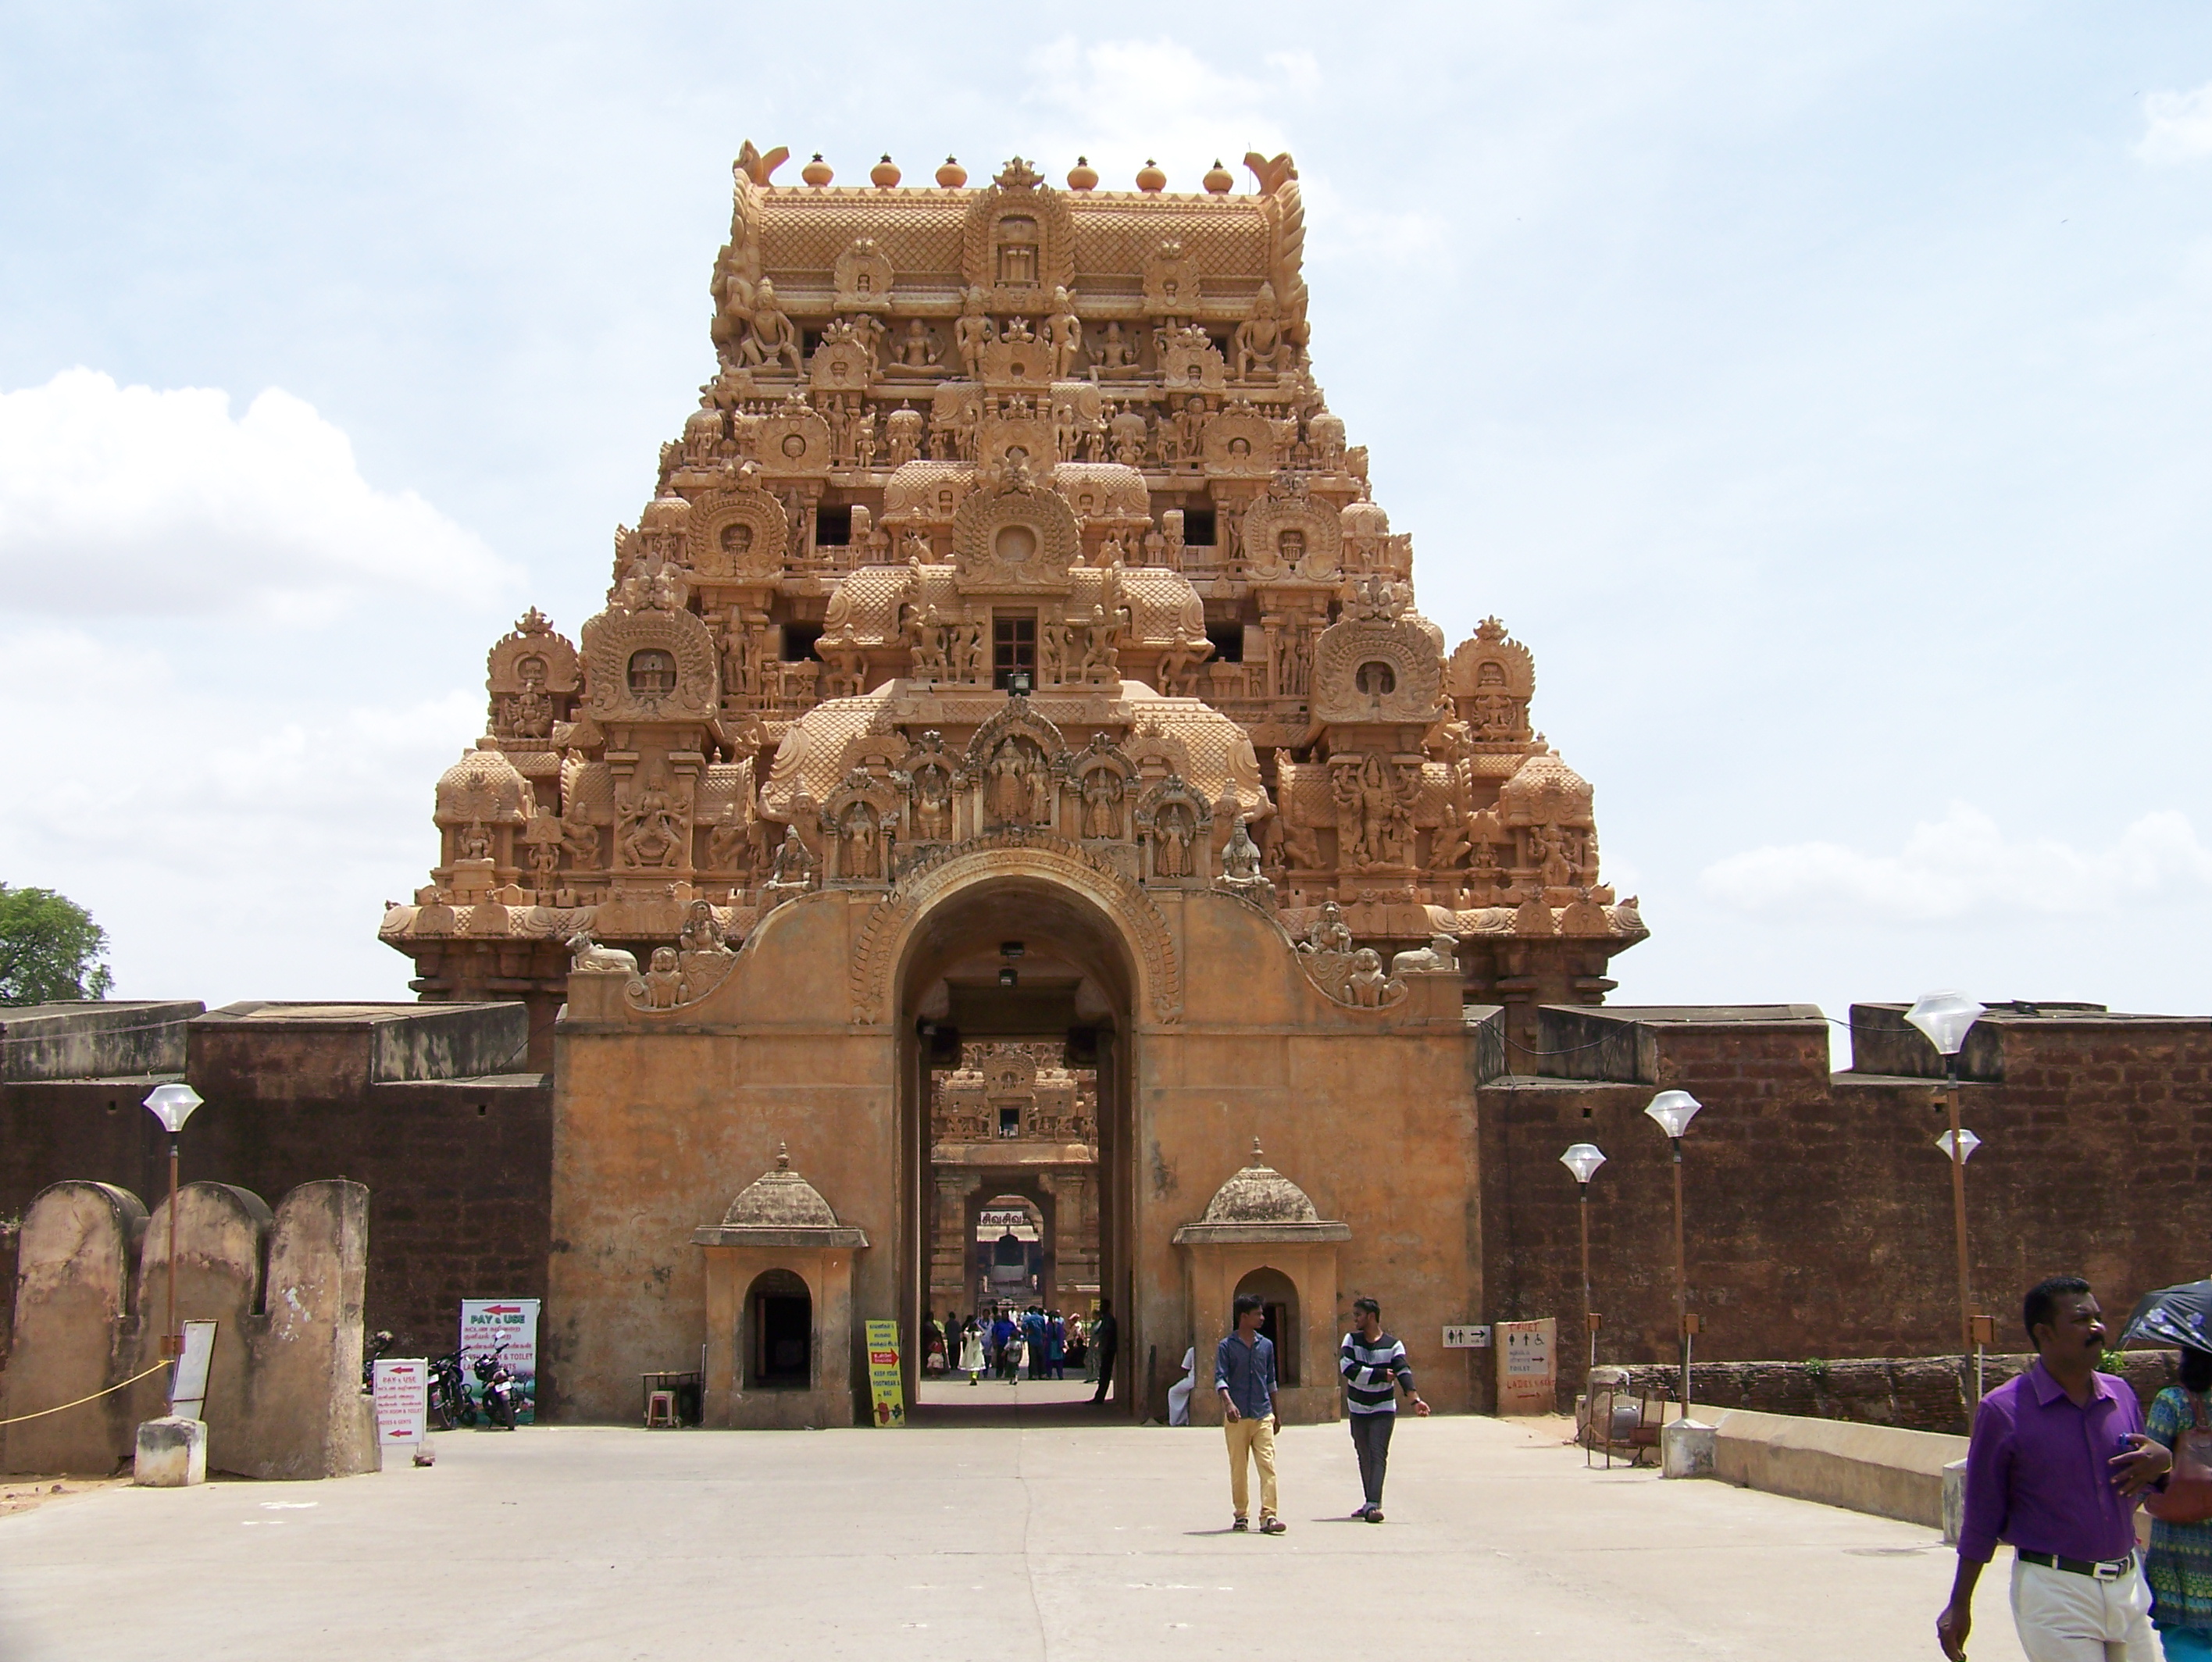 The entrance at the Brihadeesvaran temple